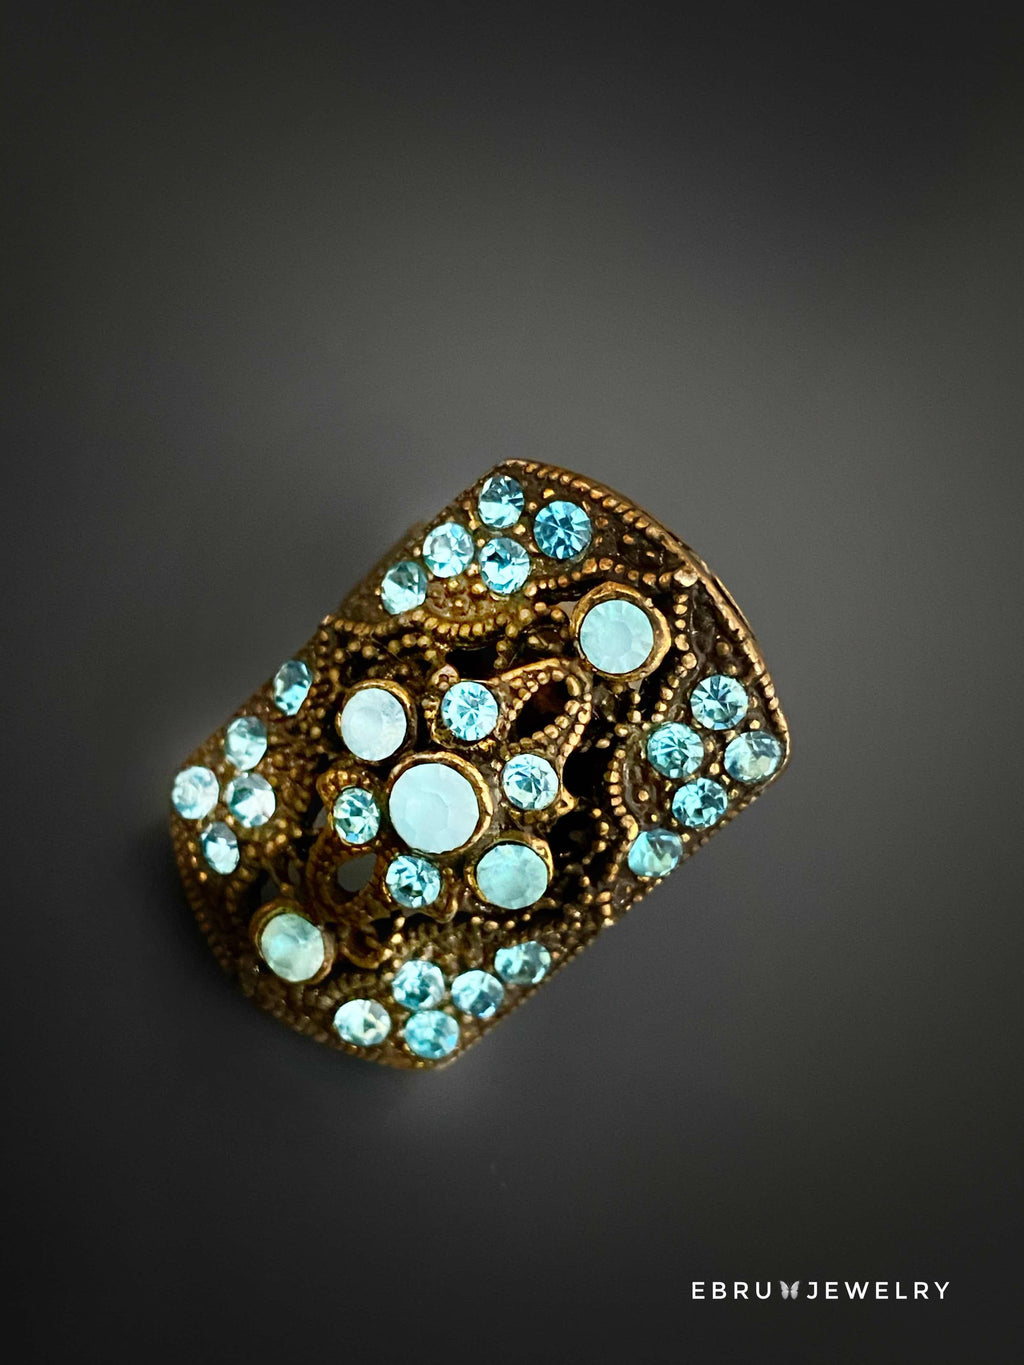 Blue Vintage Style Ring - EBRU JEWELRY